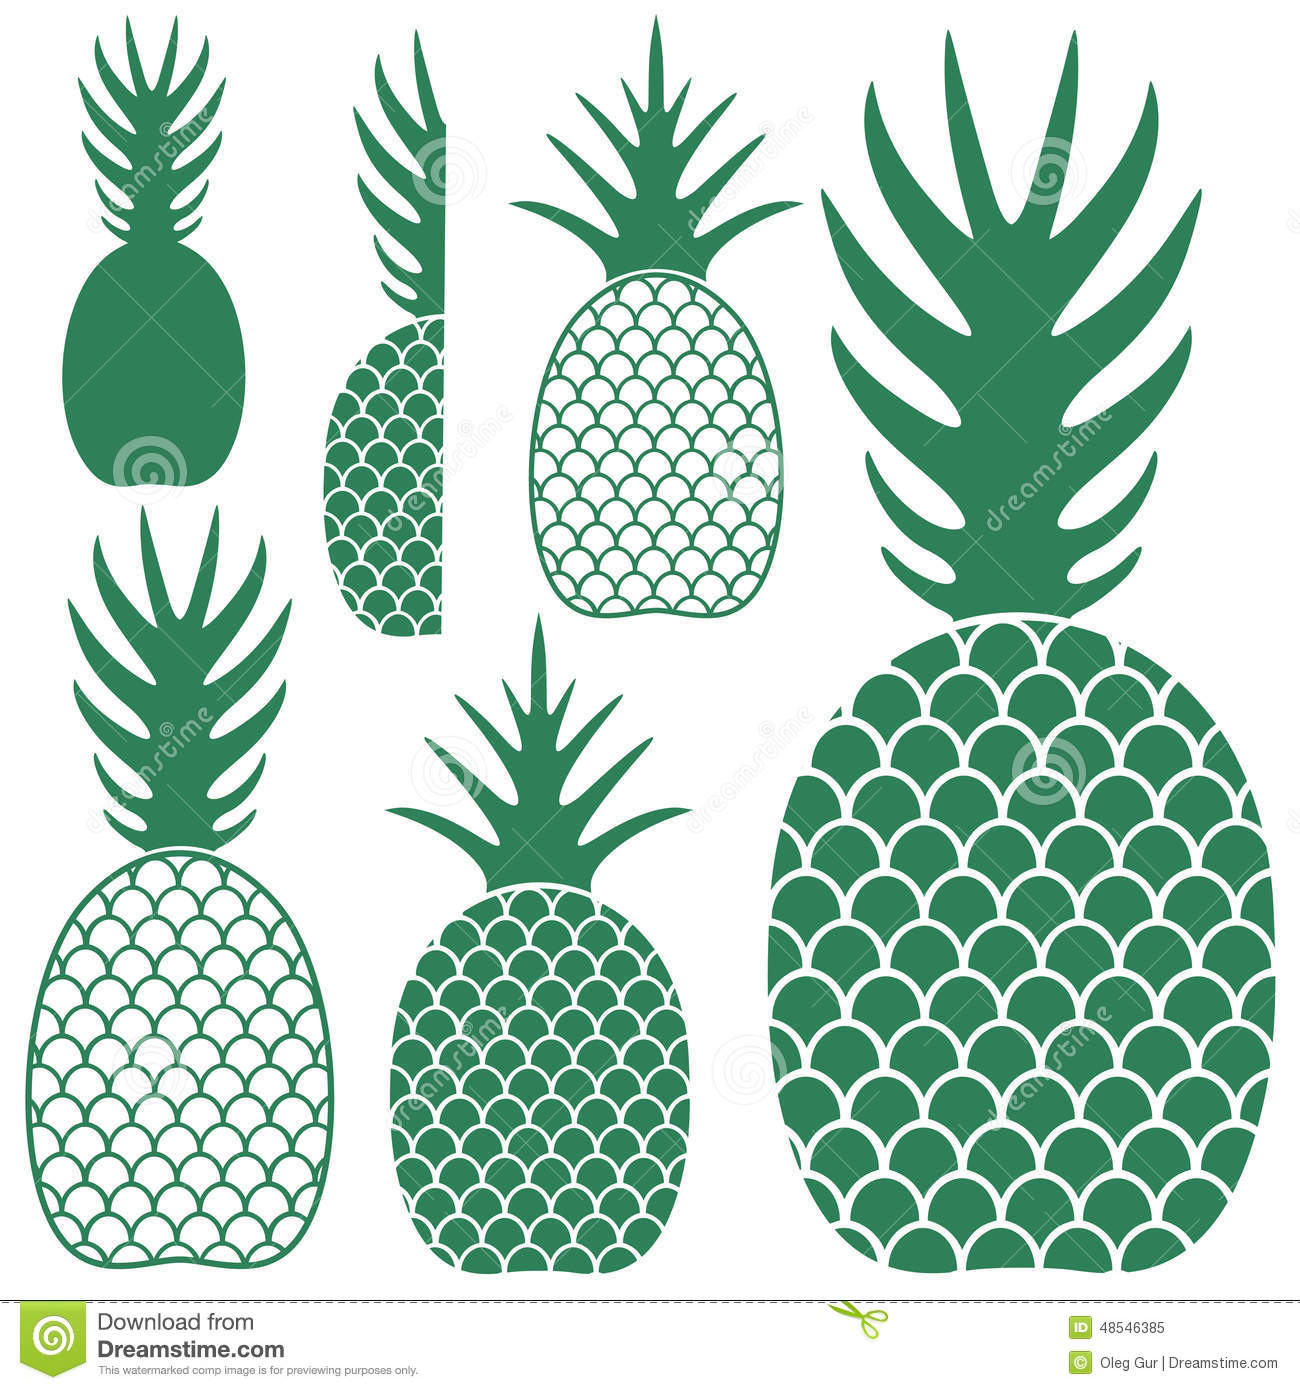 Pineapple Stock Vector - Image: 48546385